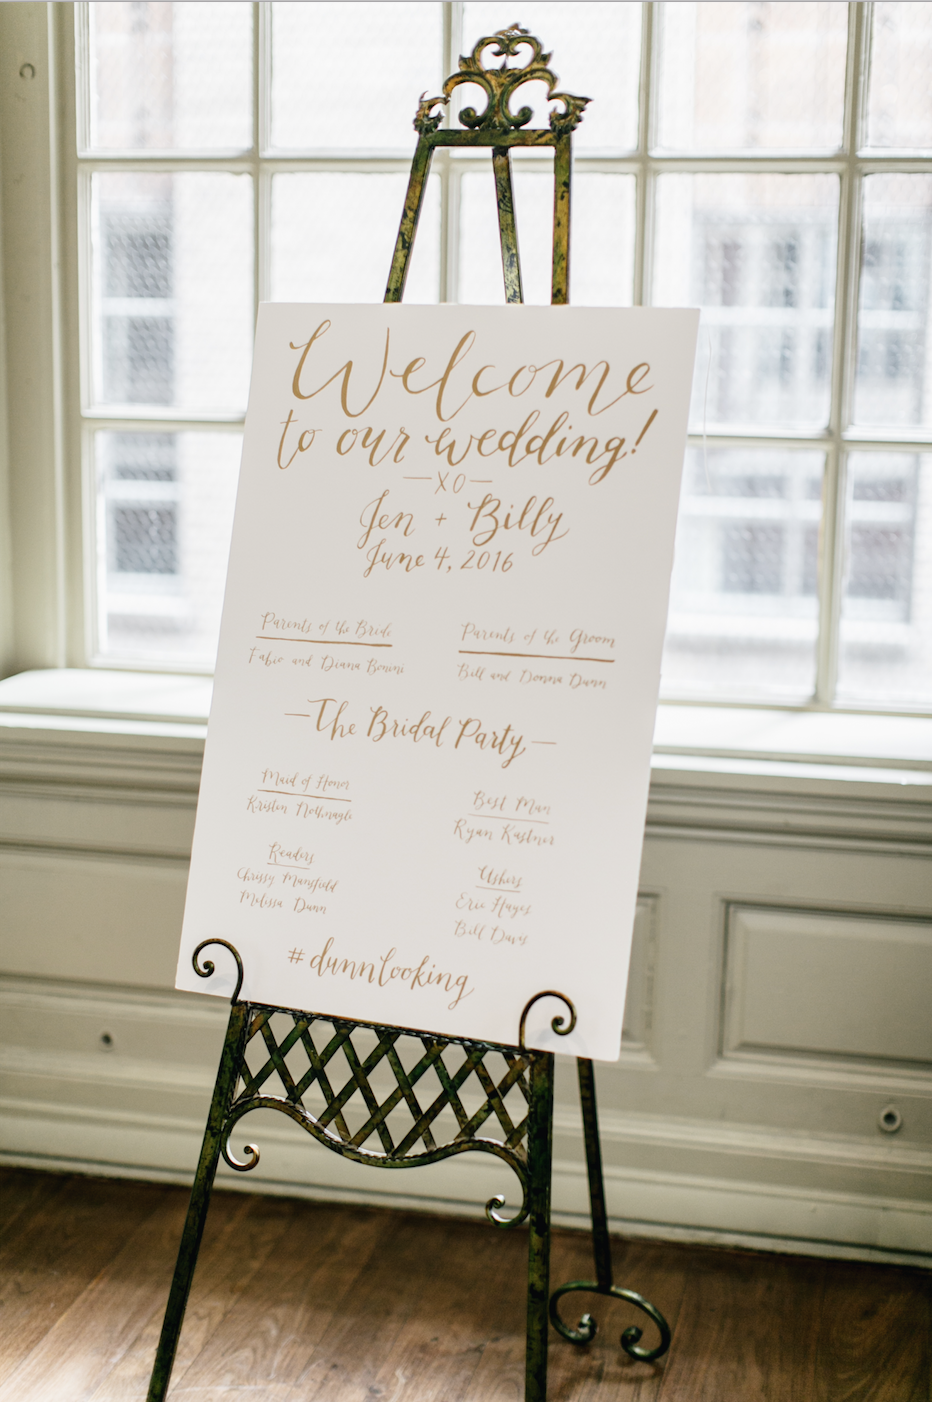 Jen + Billy's Philadelphia wedding // welcome and ceremony program sign by hello, bird. // photo by Emily Wren Photography